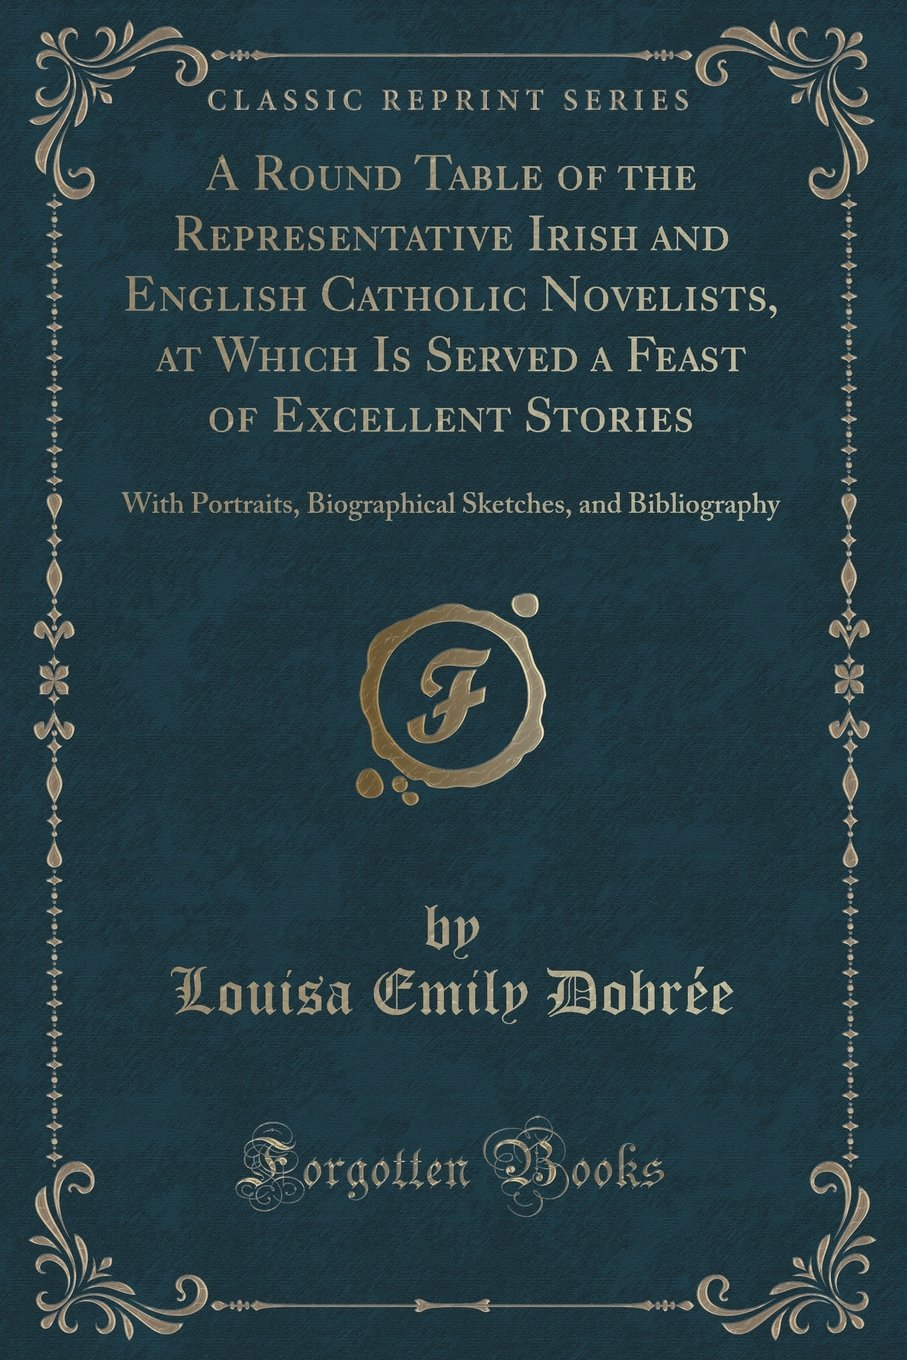 A Round Table of the Representative Irish and English Catholic Novelists, at Which Is Served a Feast of Excellent Stories: With Portraits, Biographical Sketches, and Bibliography (Classic Reprint) ebook